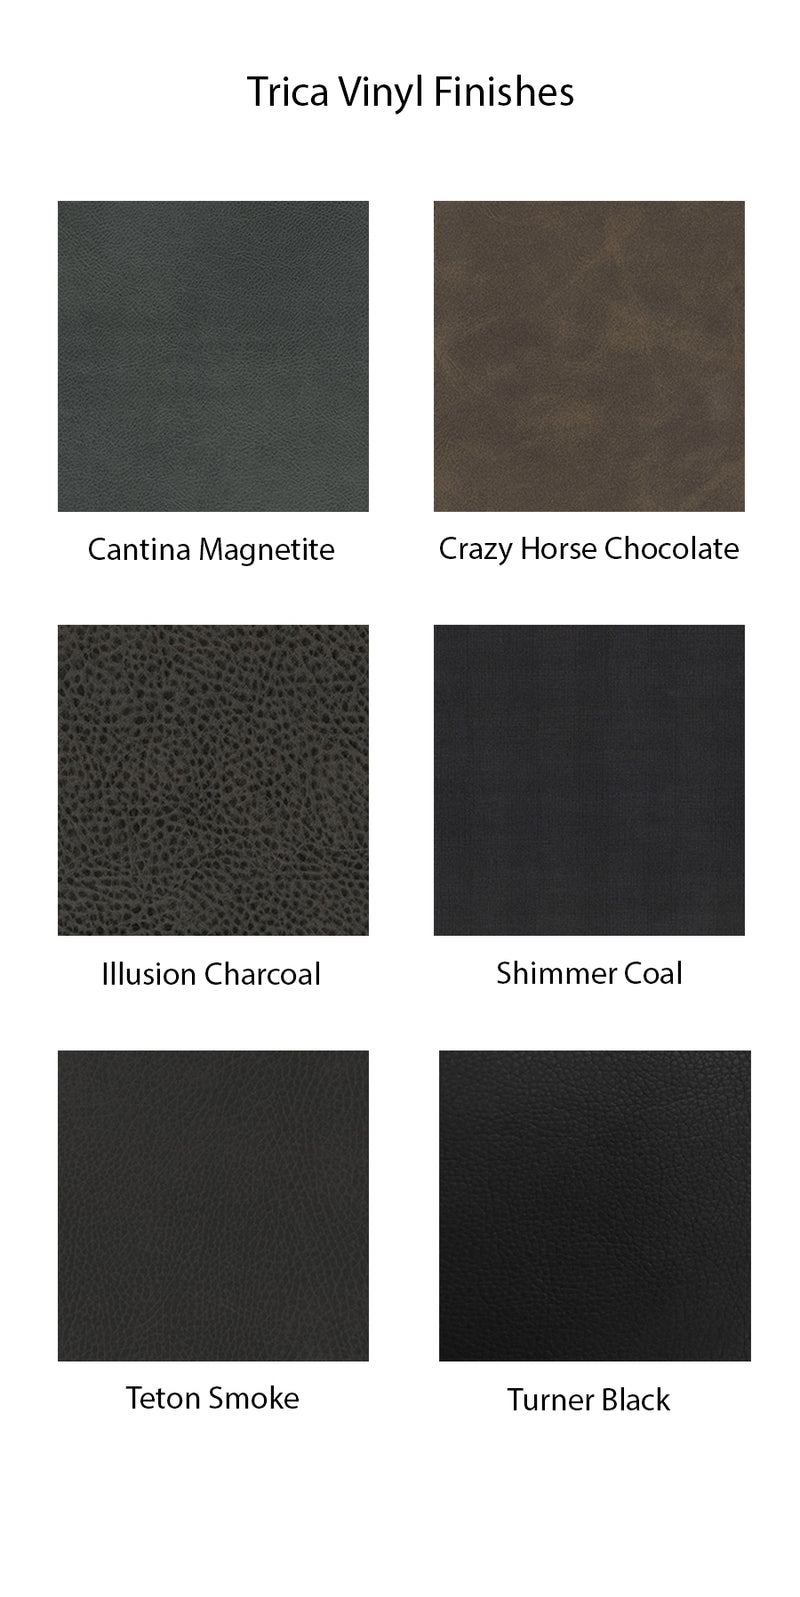 products/vinyl-finishes-trica_ce47d0a7-a0d3-449a-b3f1-ad4dda1a92e8.jpg